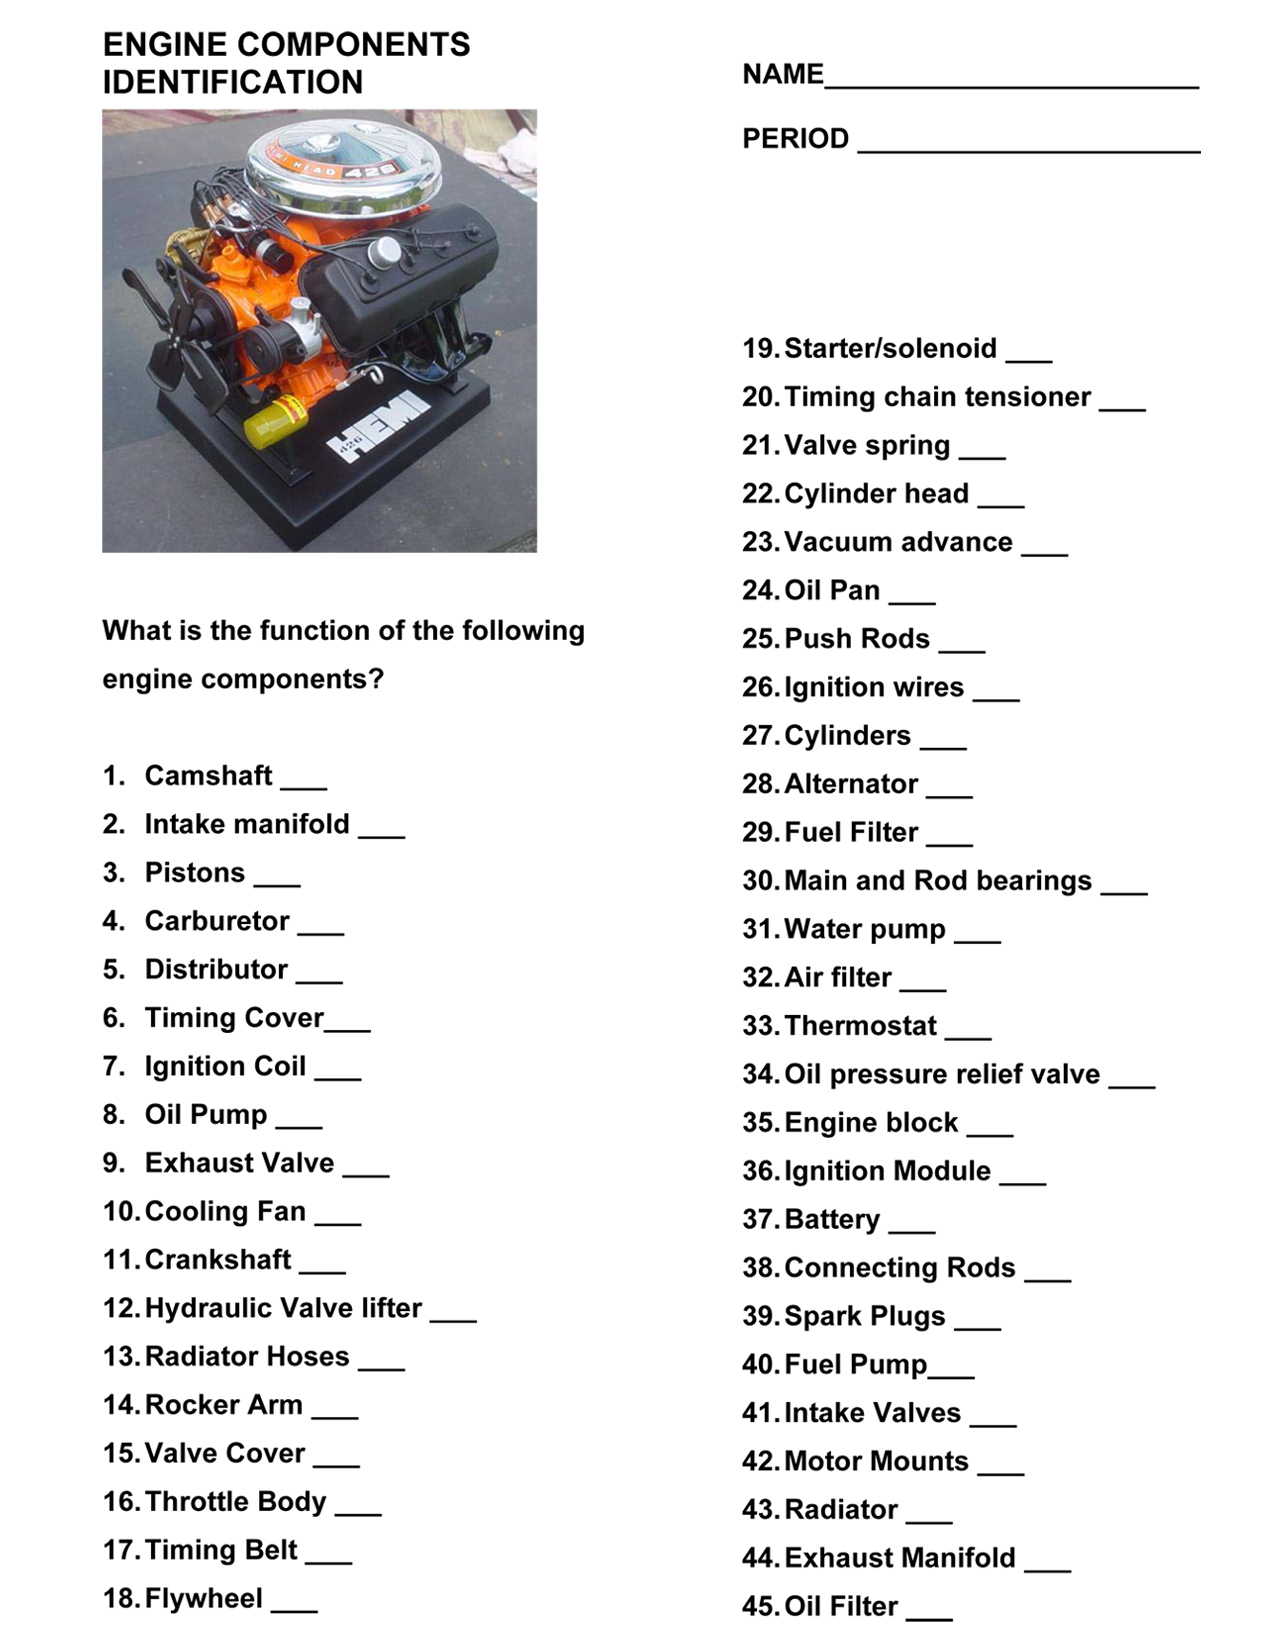 worksheet Auto Mechanic Worksheets detailed reports vehicle inspections certifications egr worksheet engine components indentification worksheet